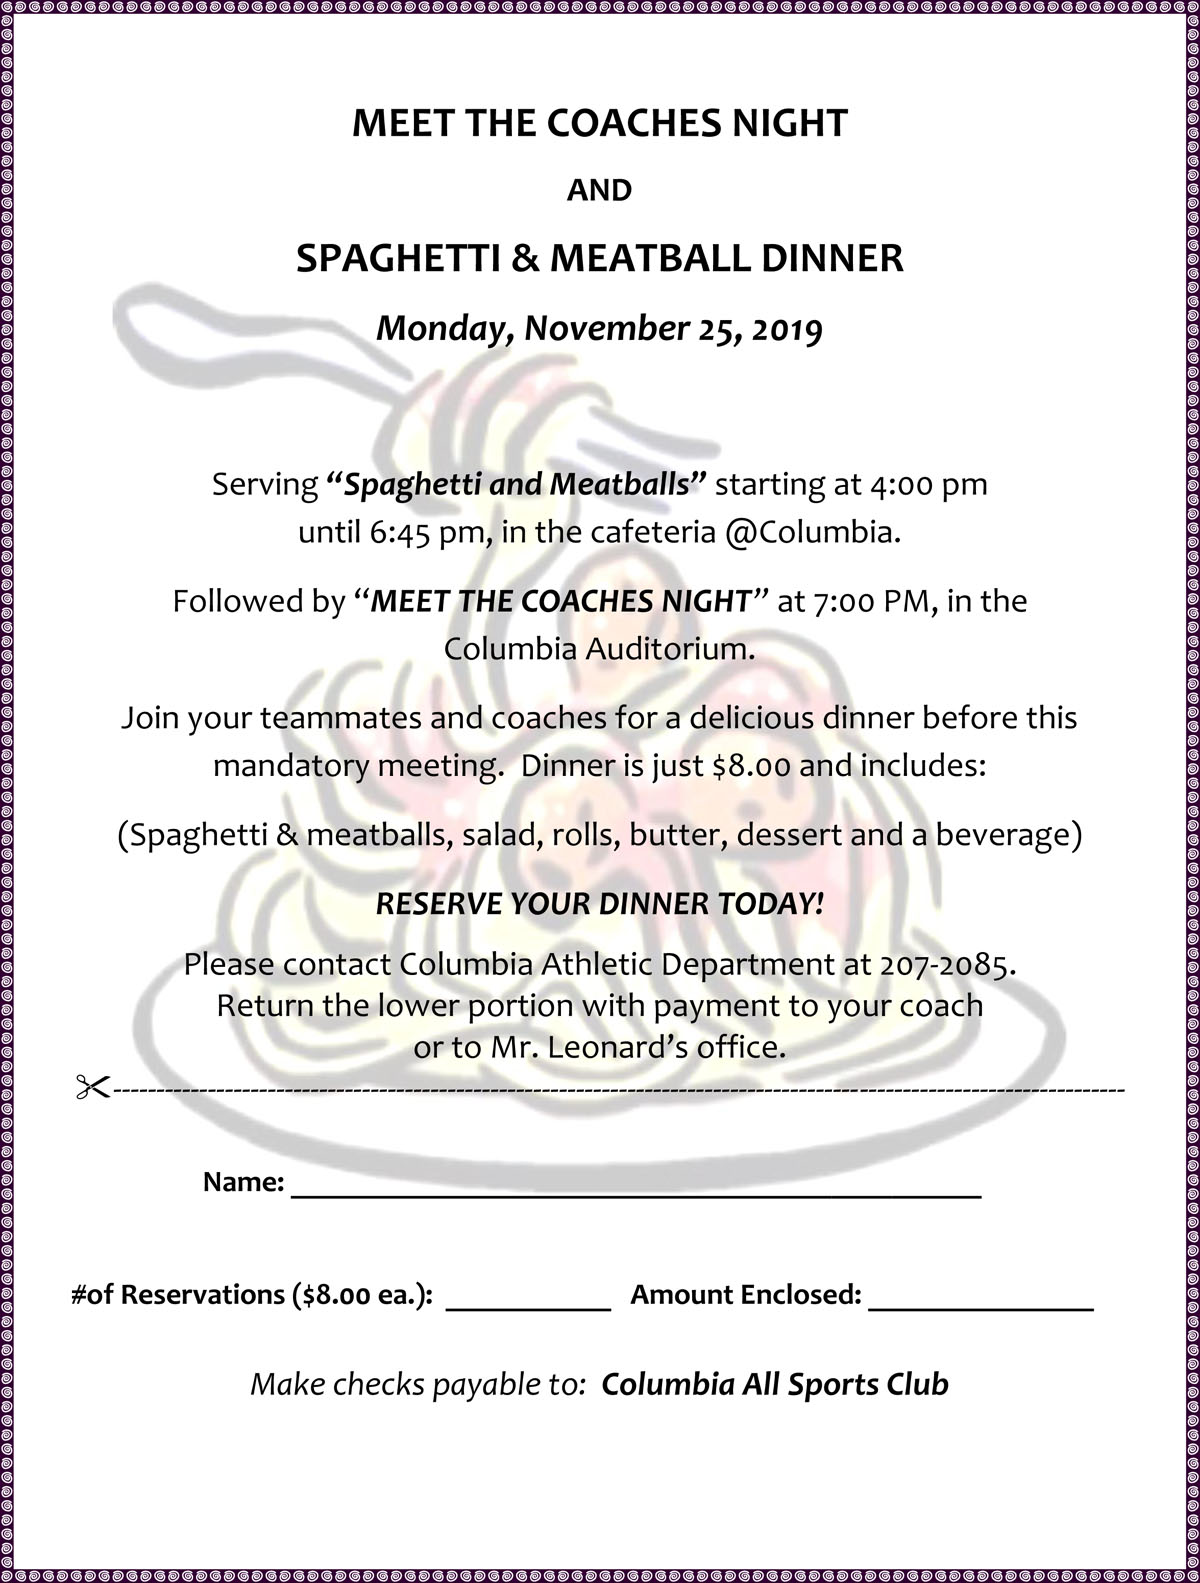 Columbia Athletics Pasta Dinner Order Form